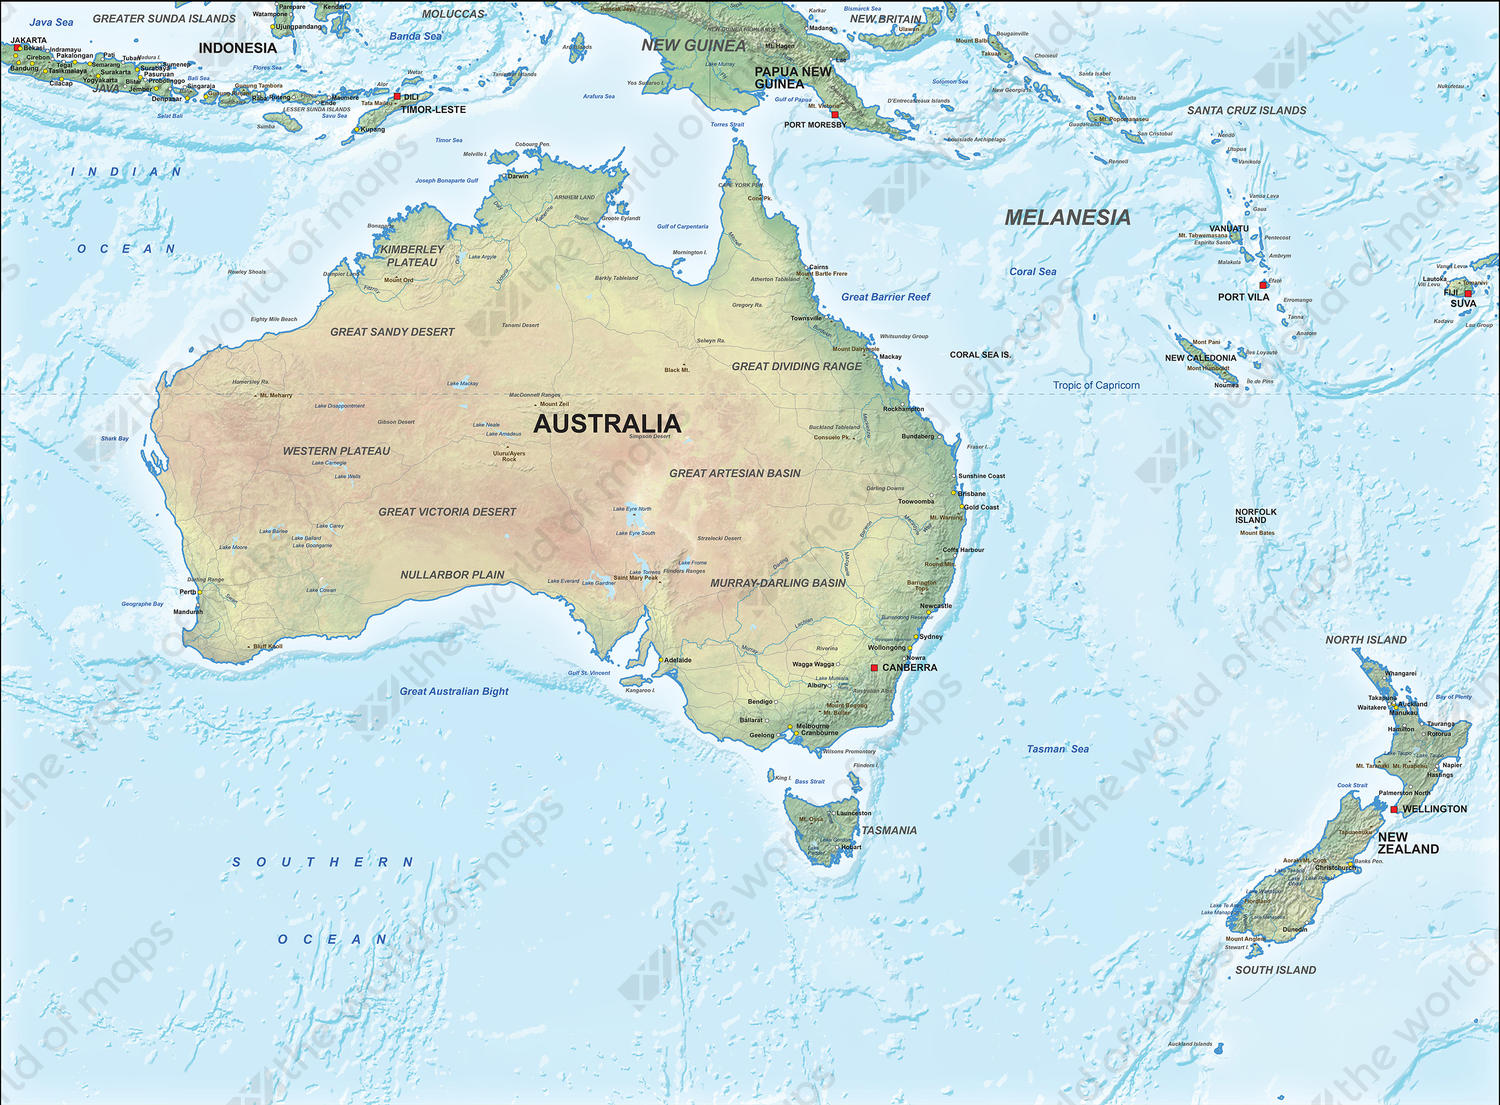 Australia In World Map.Map Australia Digital Physical 1310 The World Of Maps Com